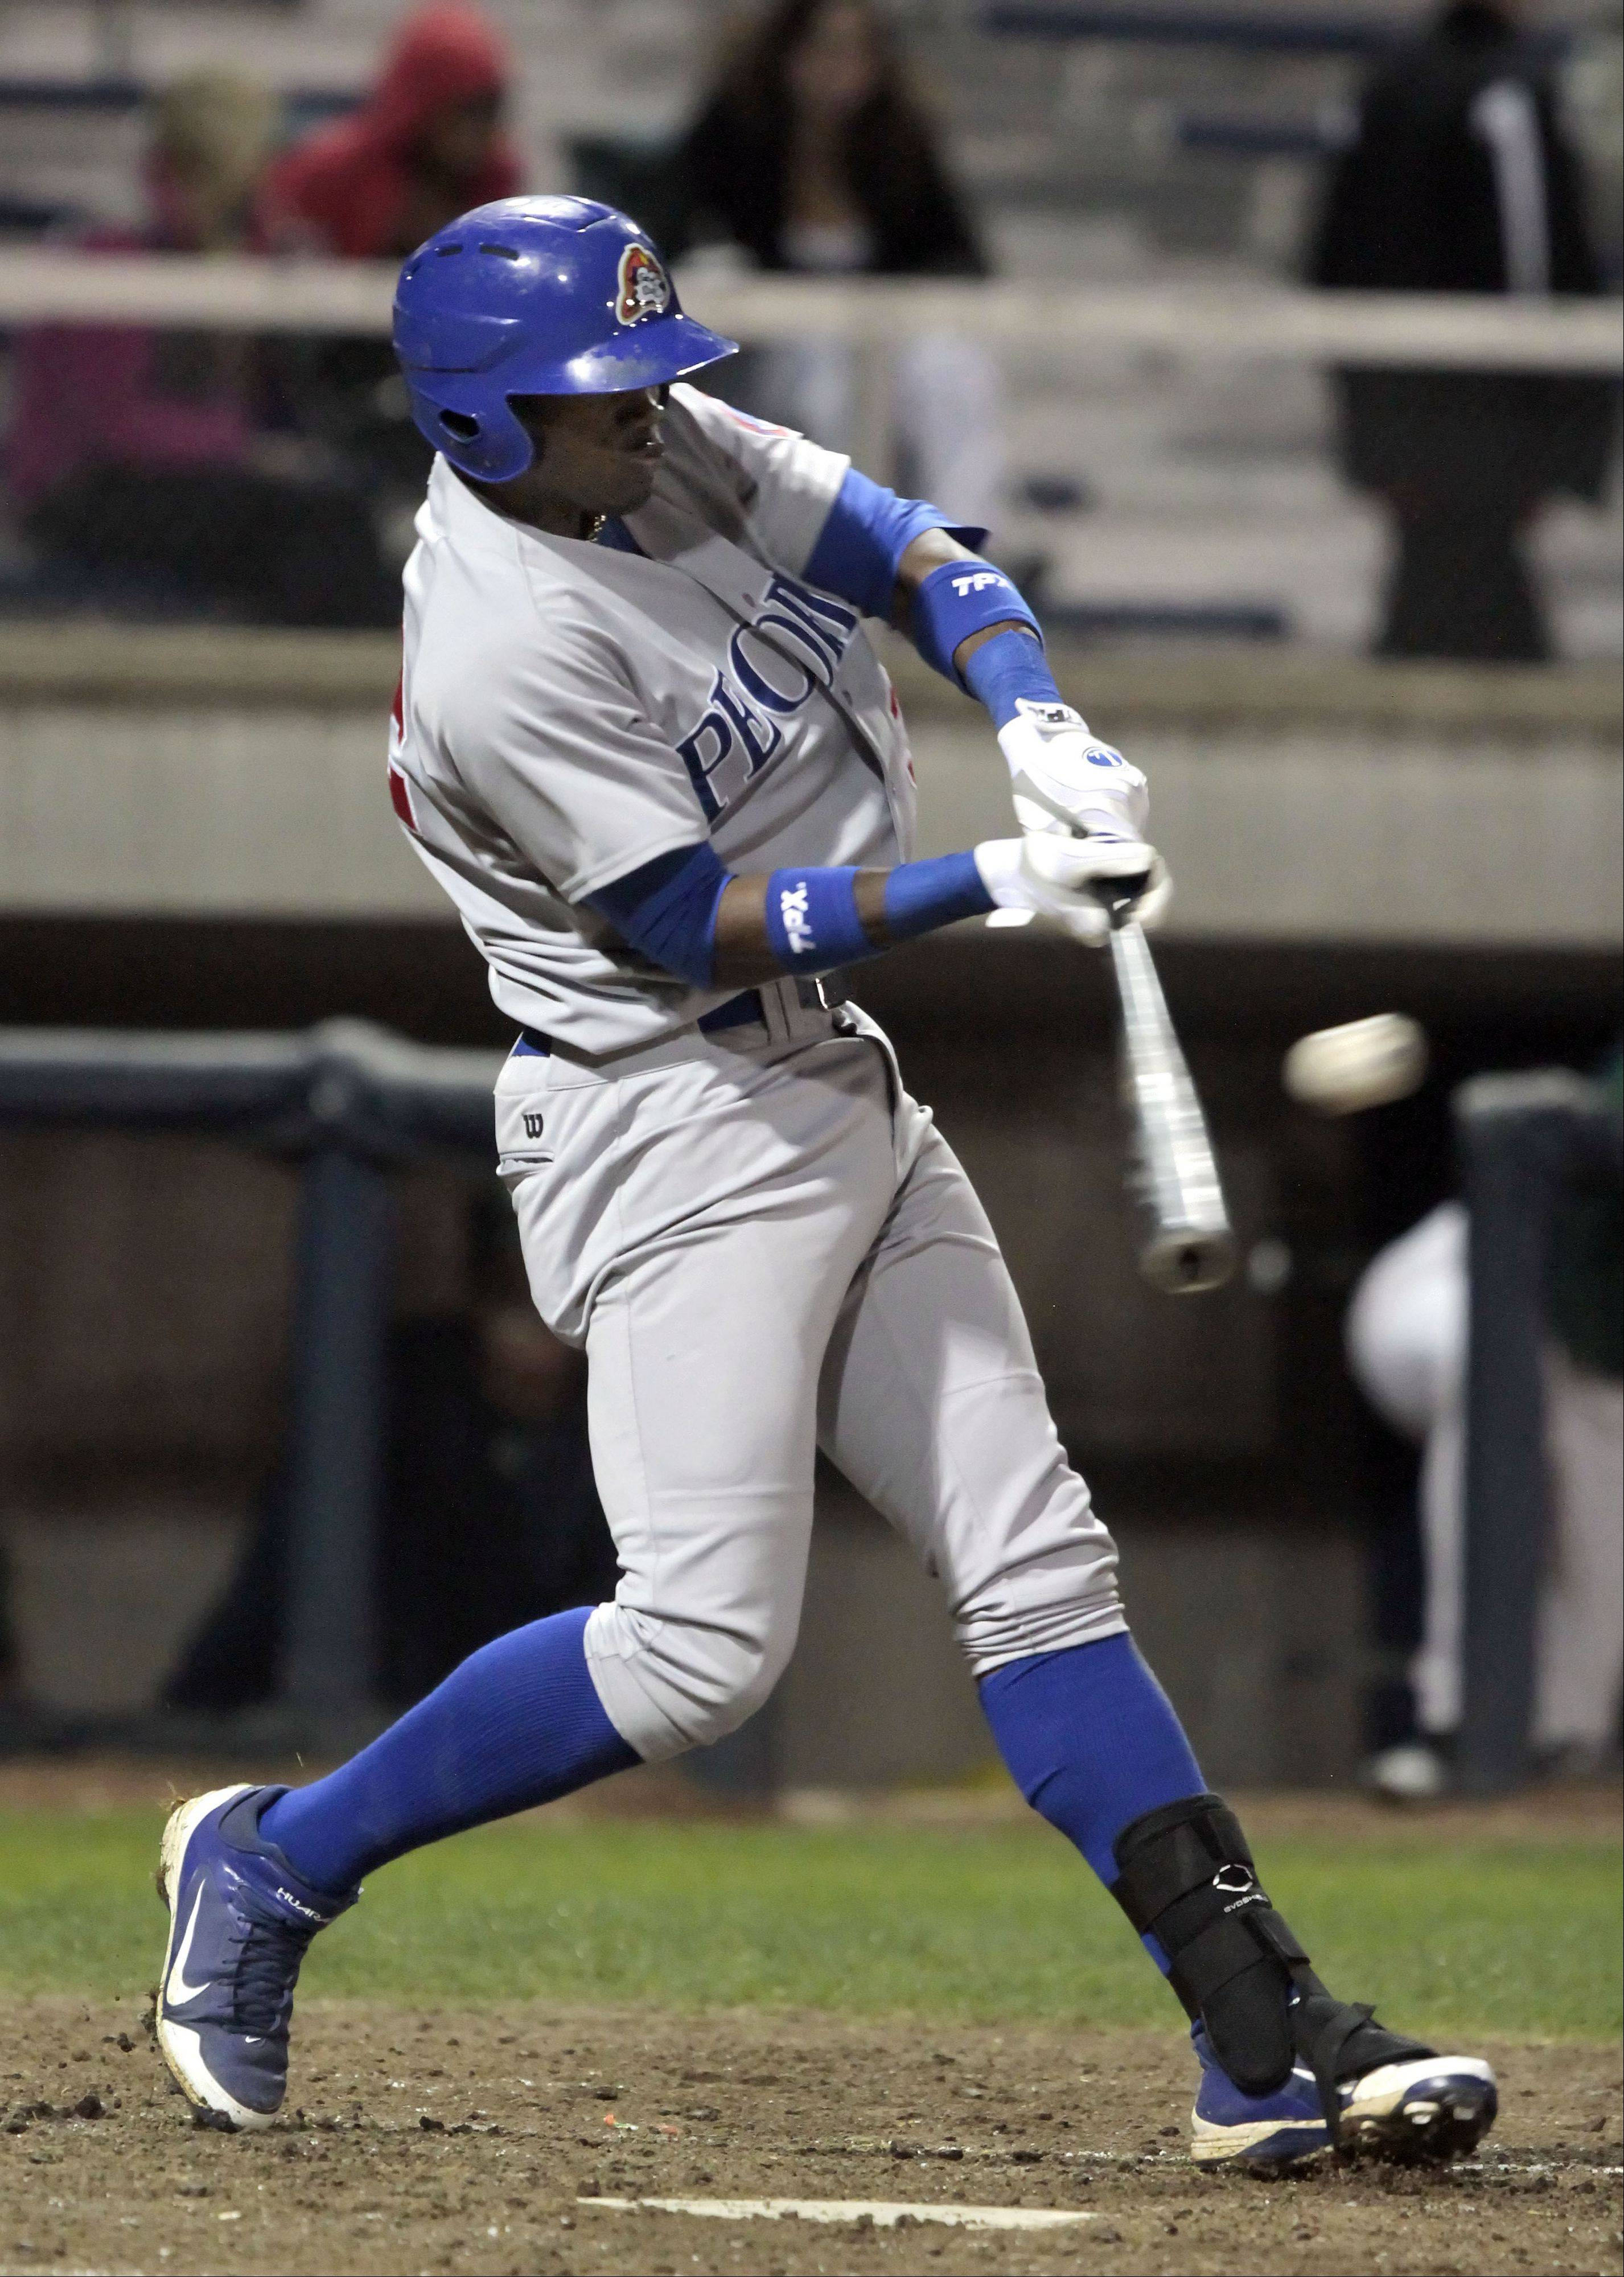 Cubs prospect Jorge Soler has the build and swing of a power hitter, says Len Kasper after watching Soler take batting practice at Wrigley Field.